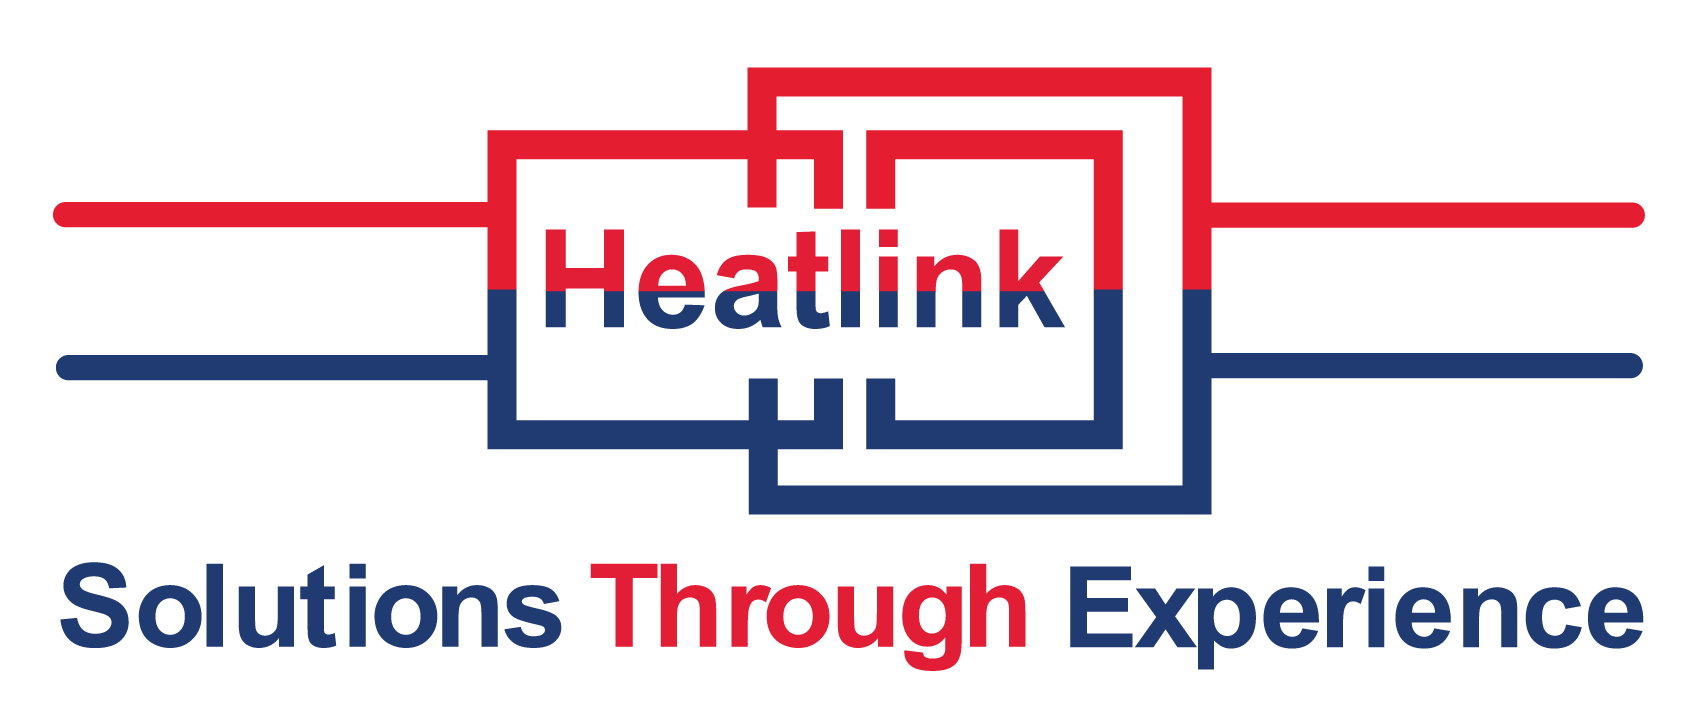 HEATLINK LOGO - Heat Interface Units Liverpool